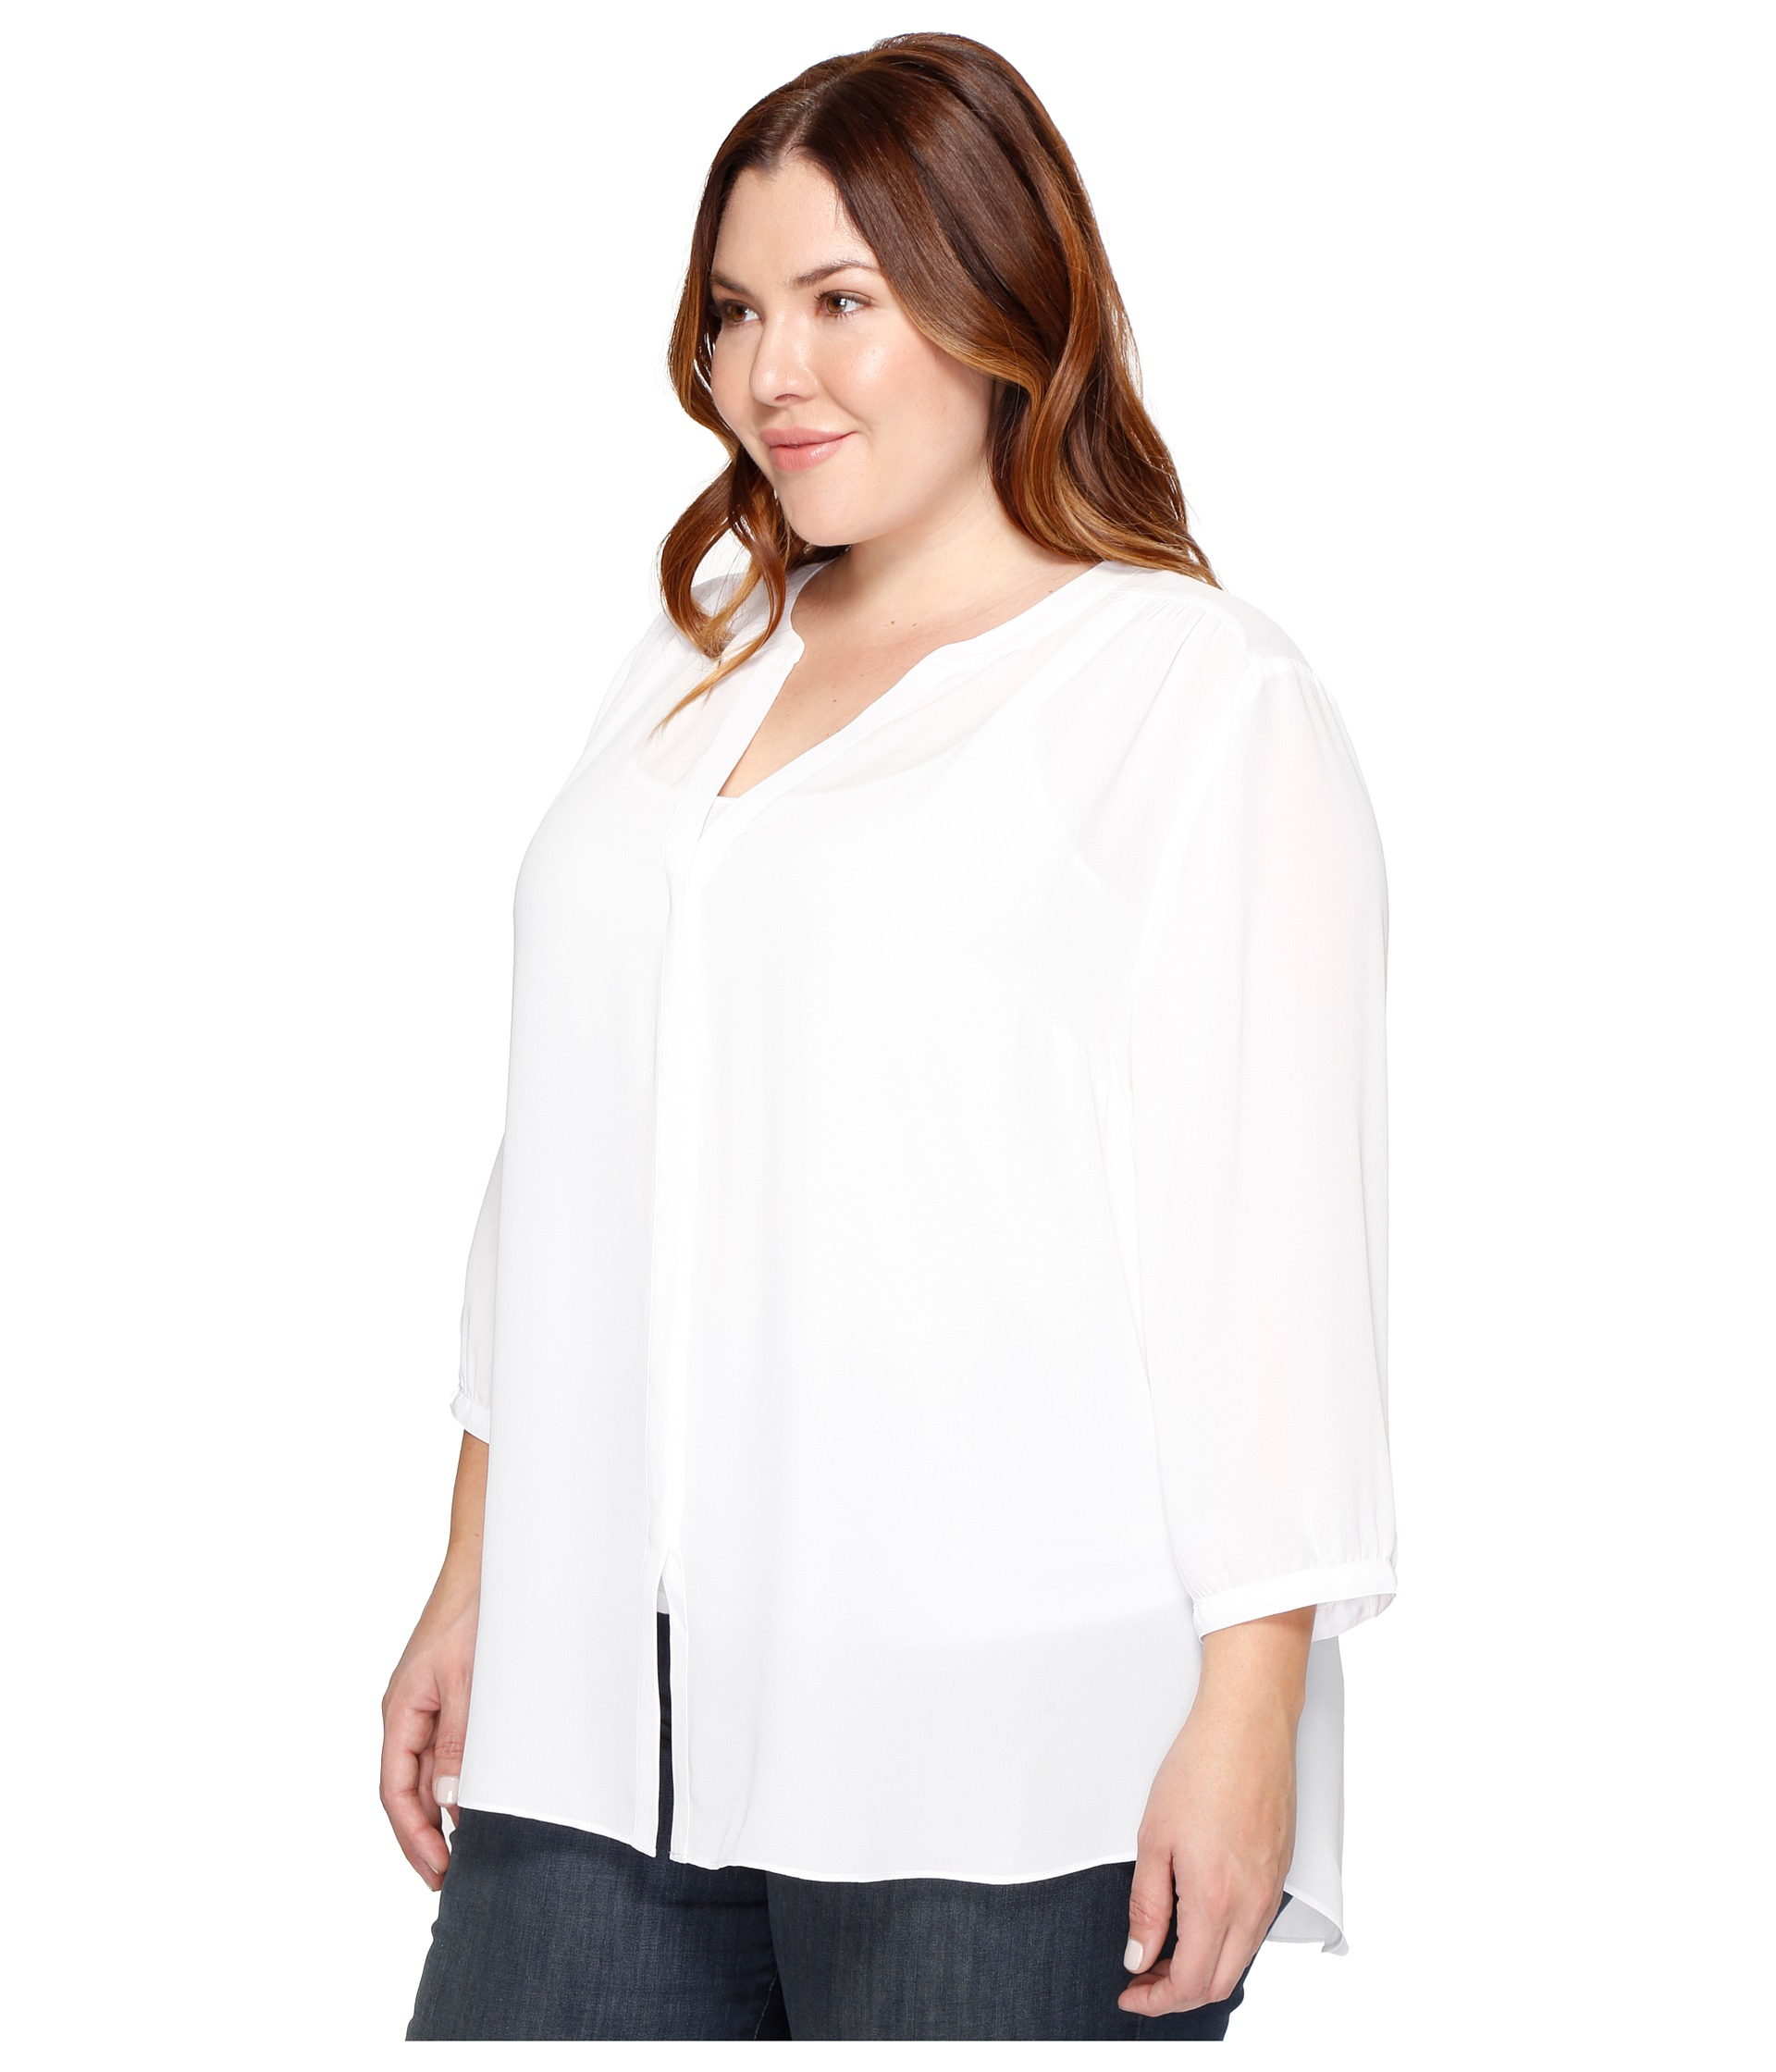 In addition, Blouse House offers an extensive collection of plus size clearance items. We carry the largest selection of ladies plus size clothing from A Personal Touch, a highly sought after and well respected brand in women's plus size fashions.